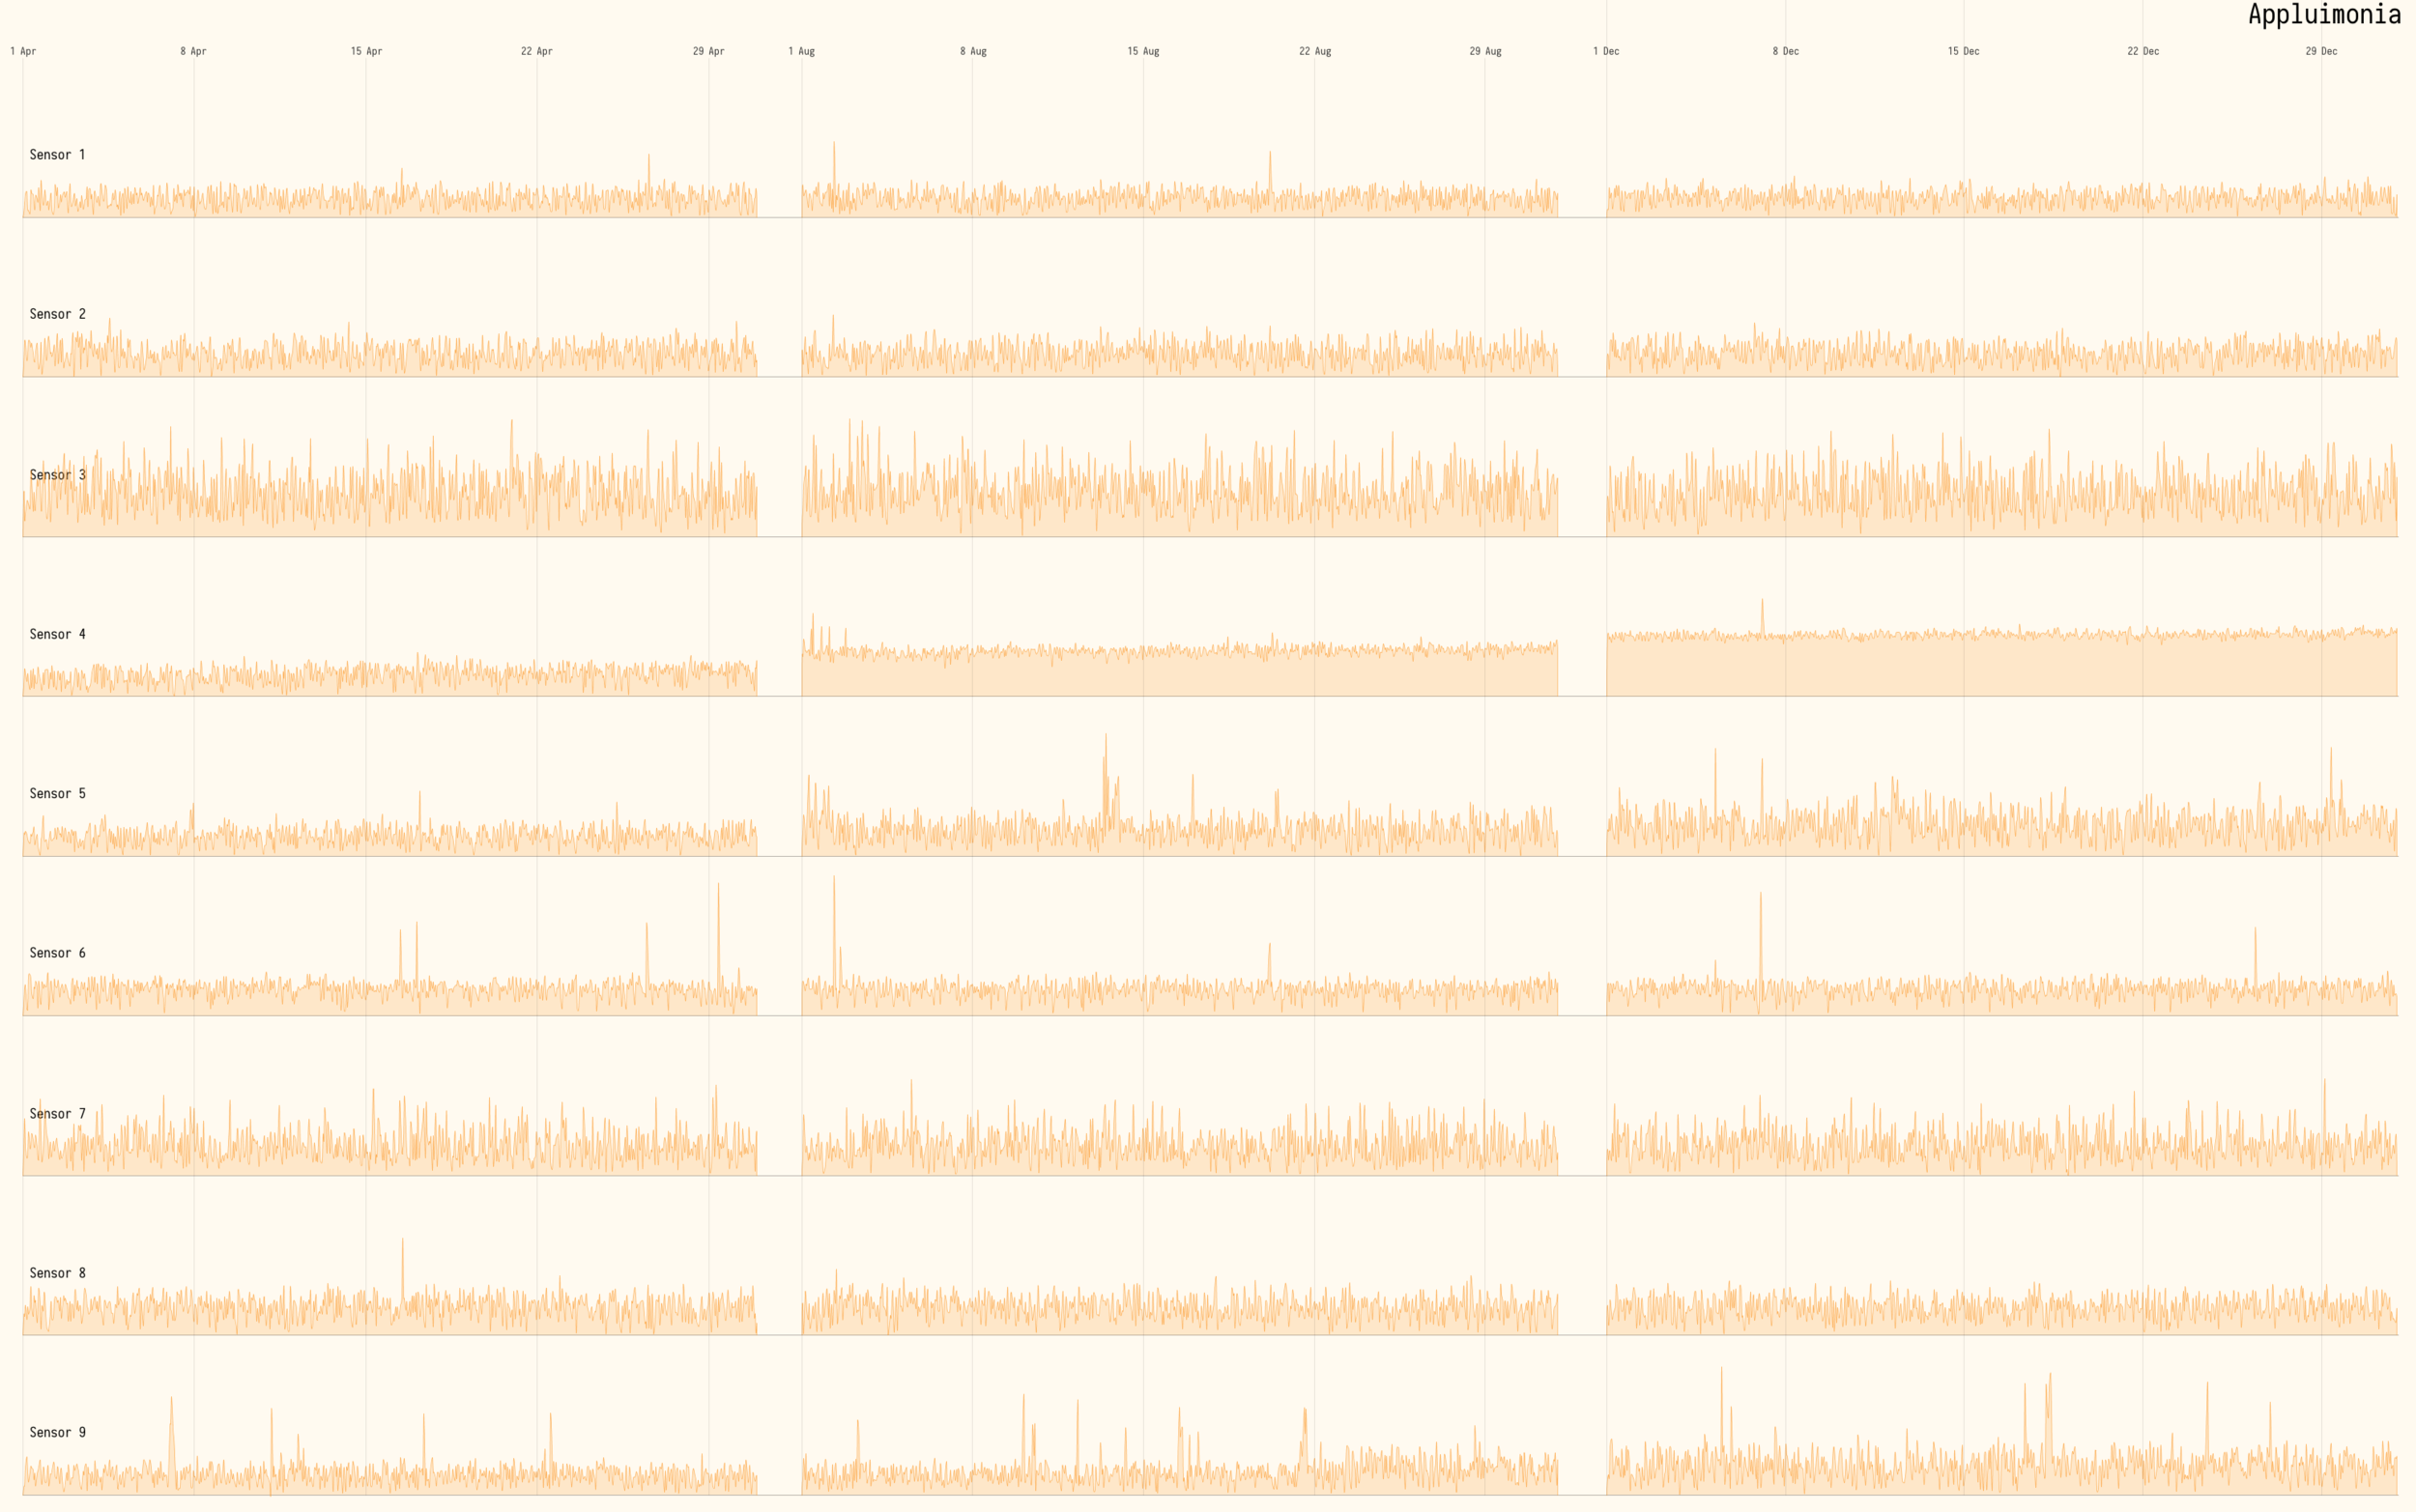 Figure 12  -Square root of Appluimonia levels over time. All 9 sensors scaled equally.